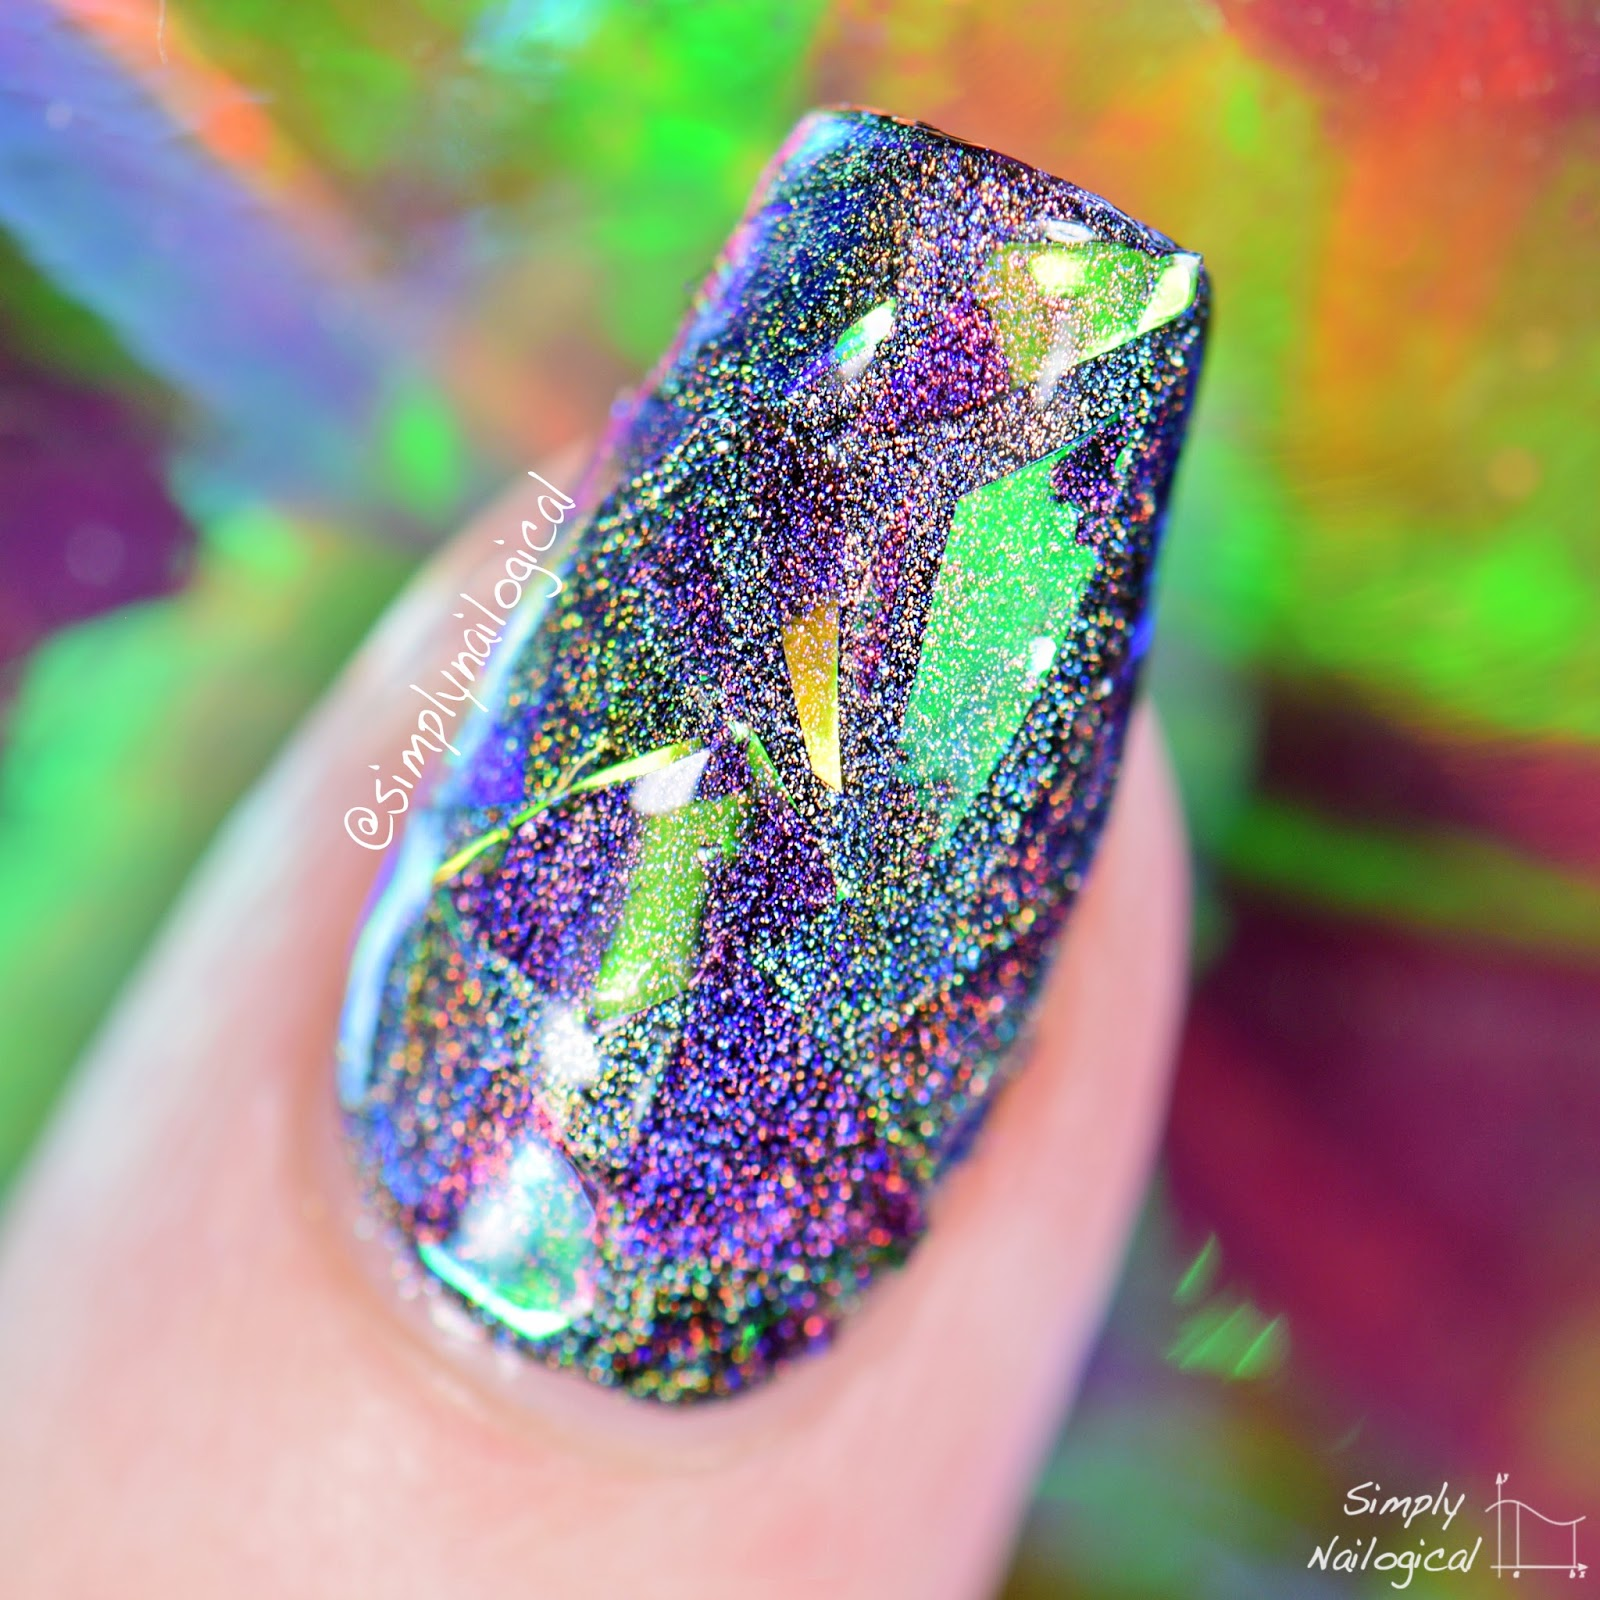 Shattered Glass Nails Are SO EFFIN COOL WITH HOLO Lesson Learned Use Holo In Combination With Everything Life And You Will Always Walk